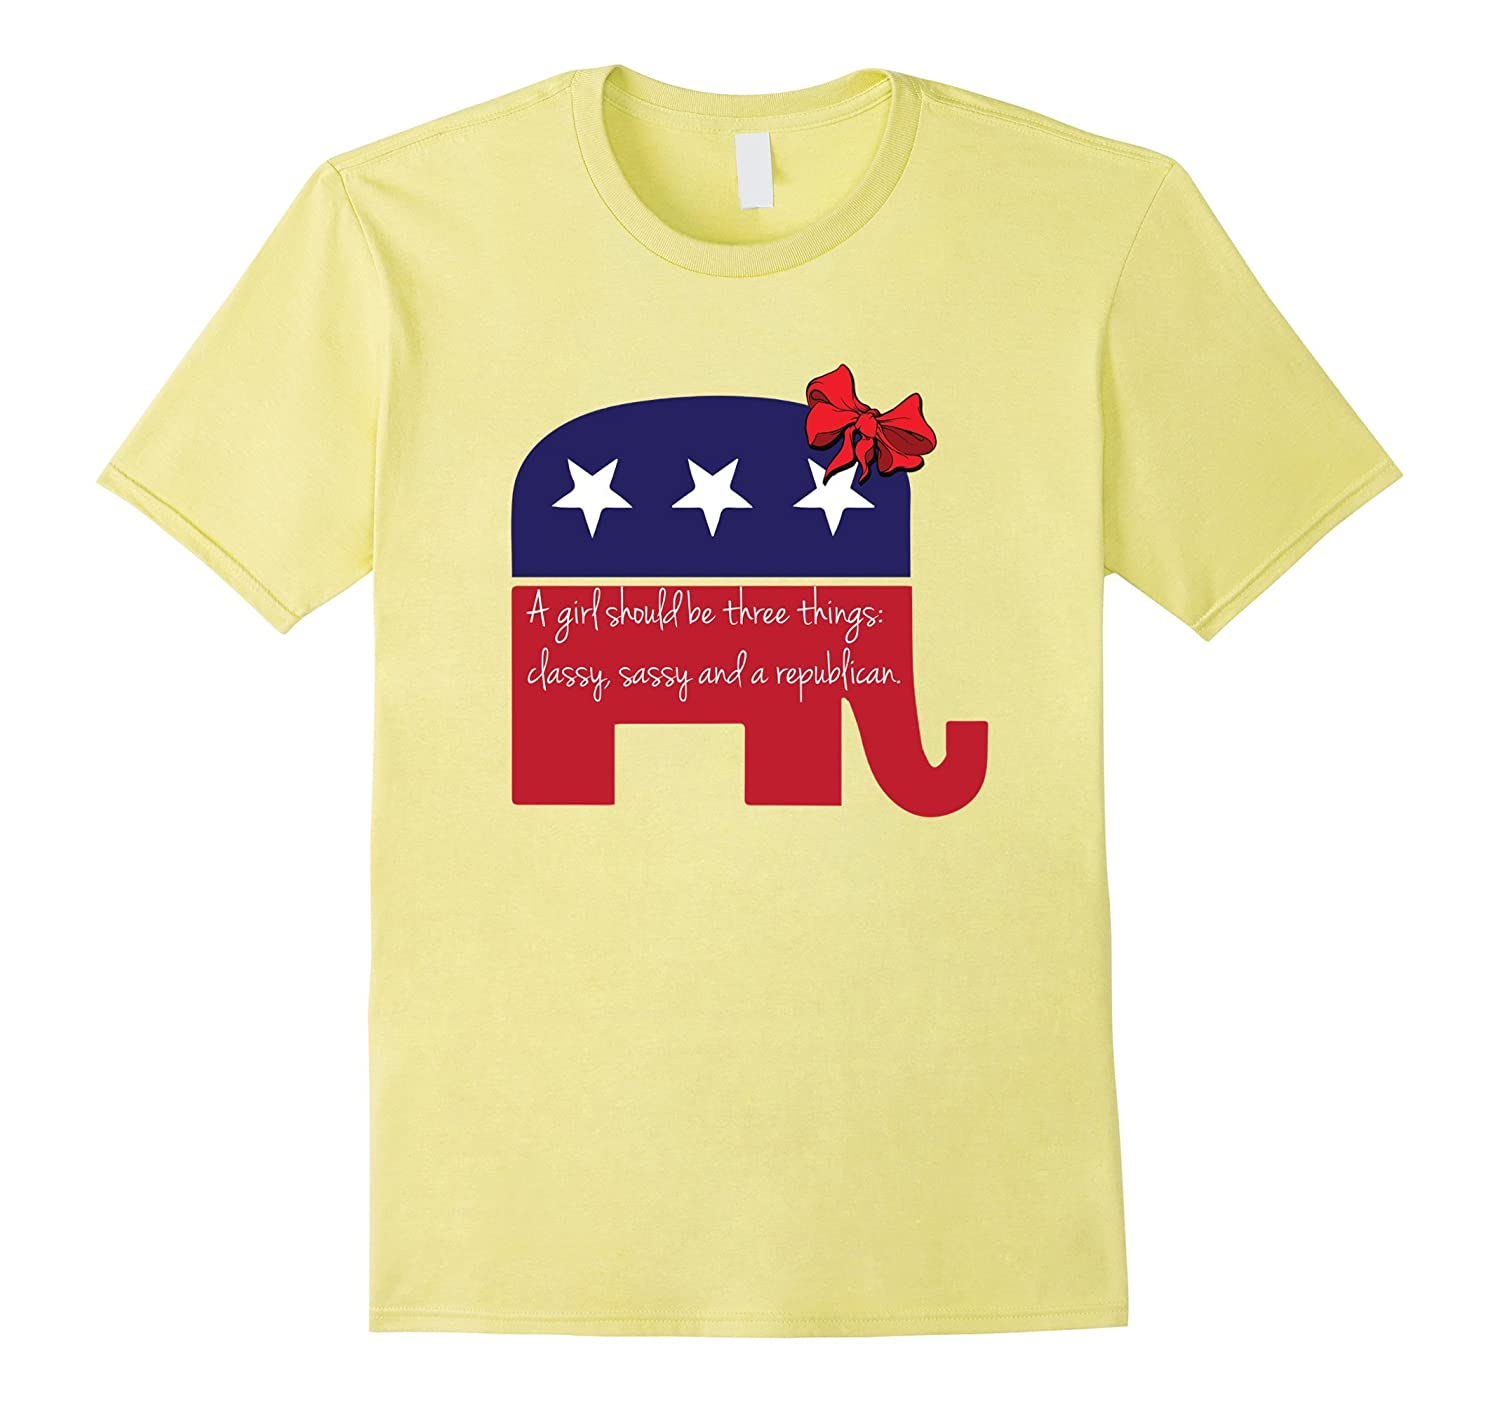 A Girl Should be Classy Sassy and Republican T-Shirt